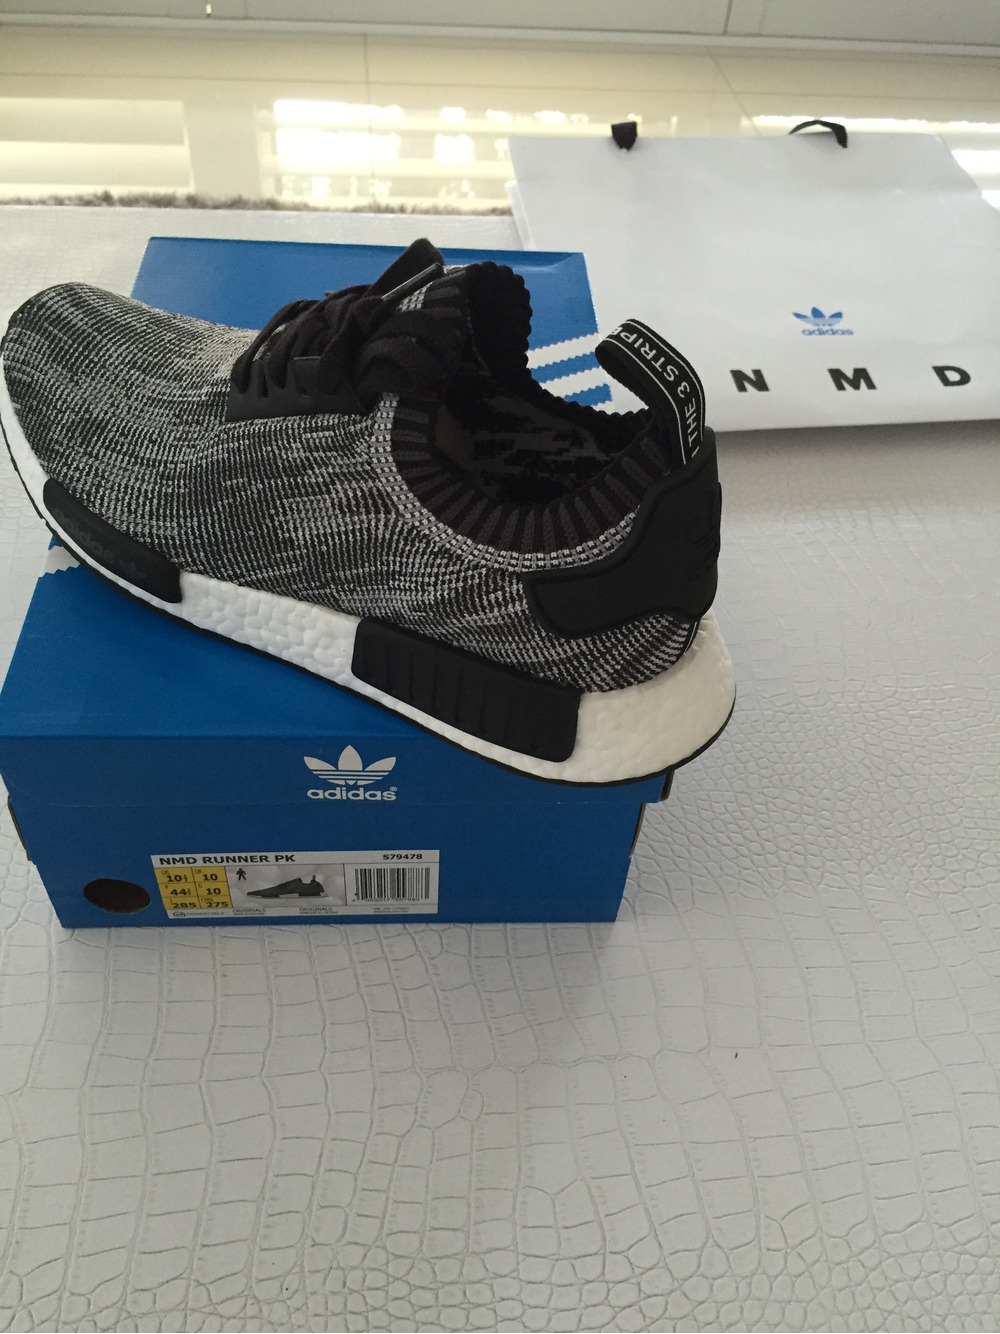 adidas nmd r1 for sale